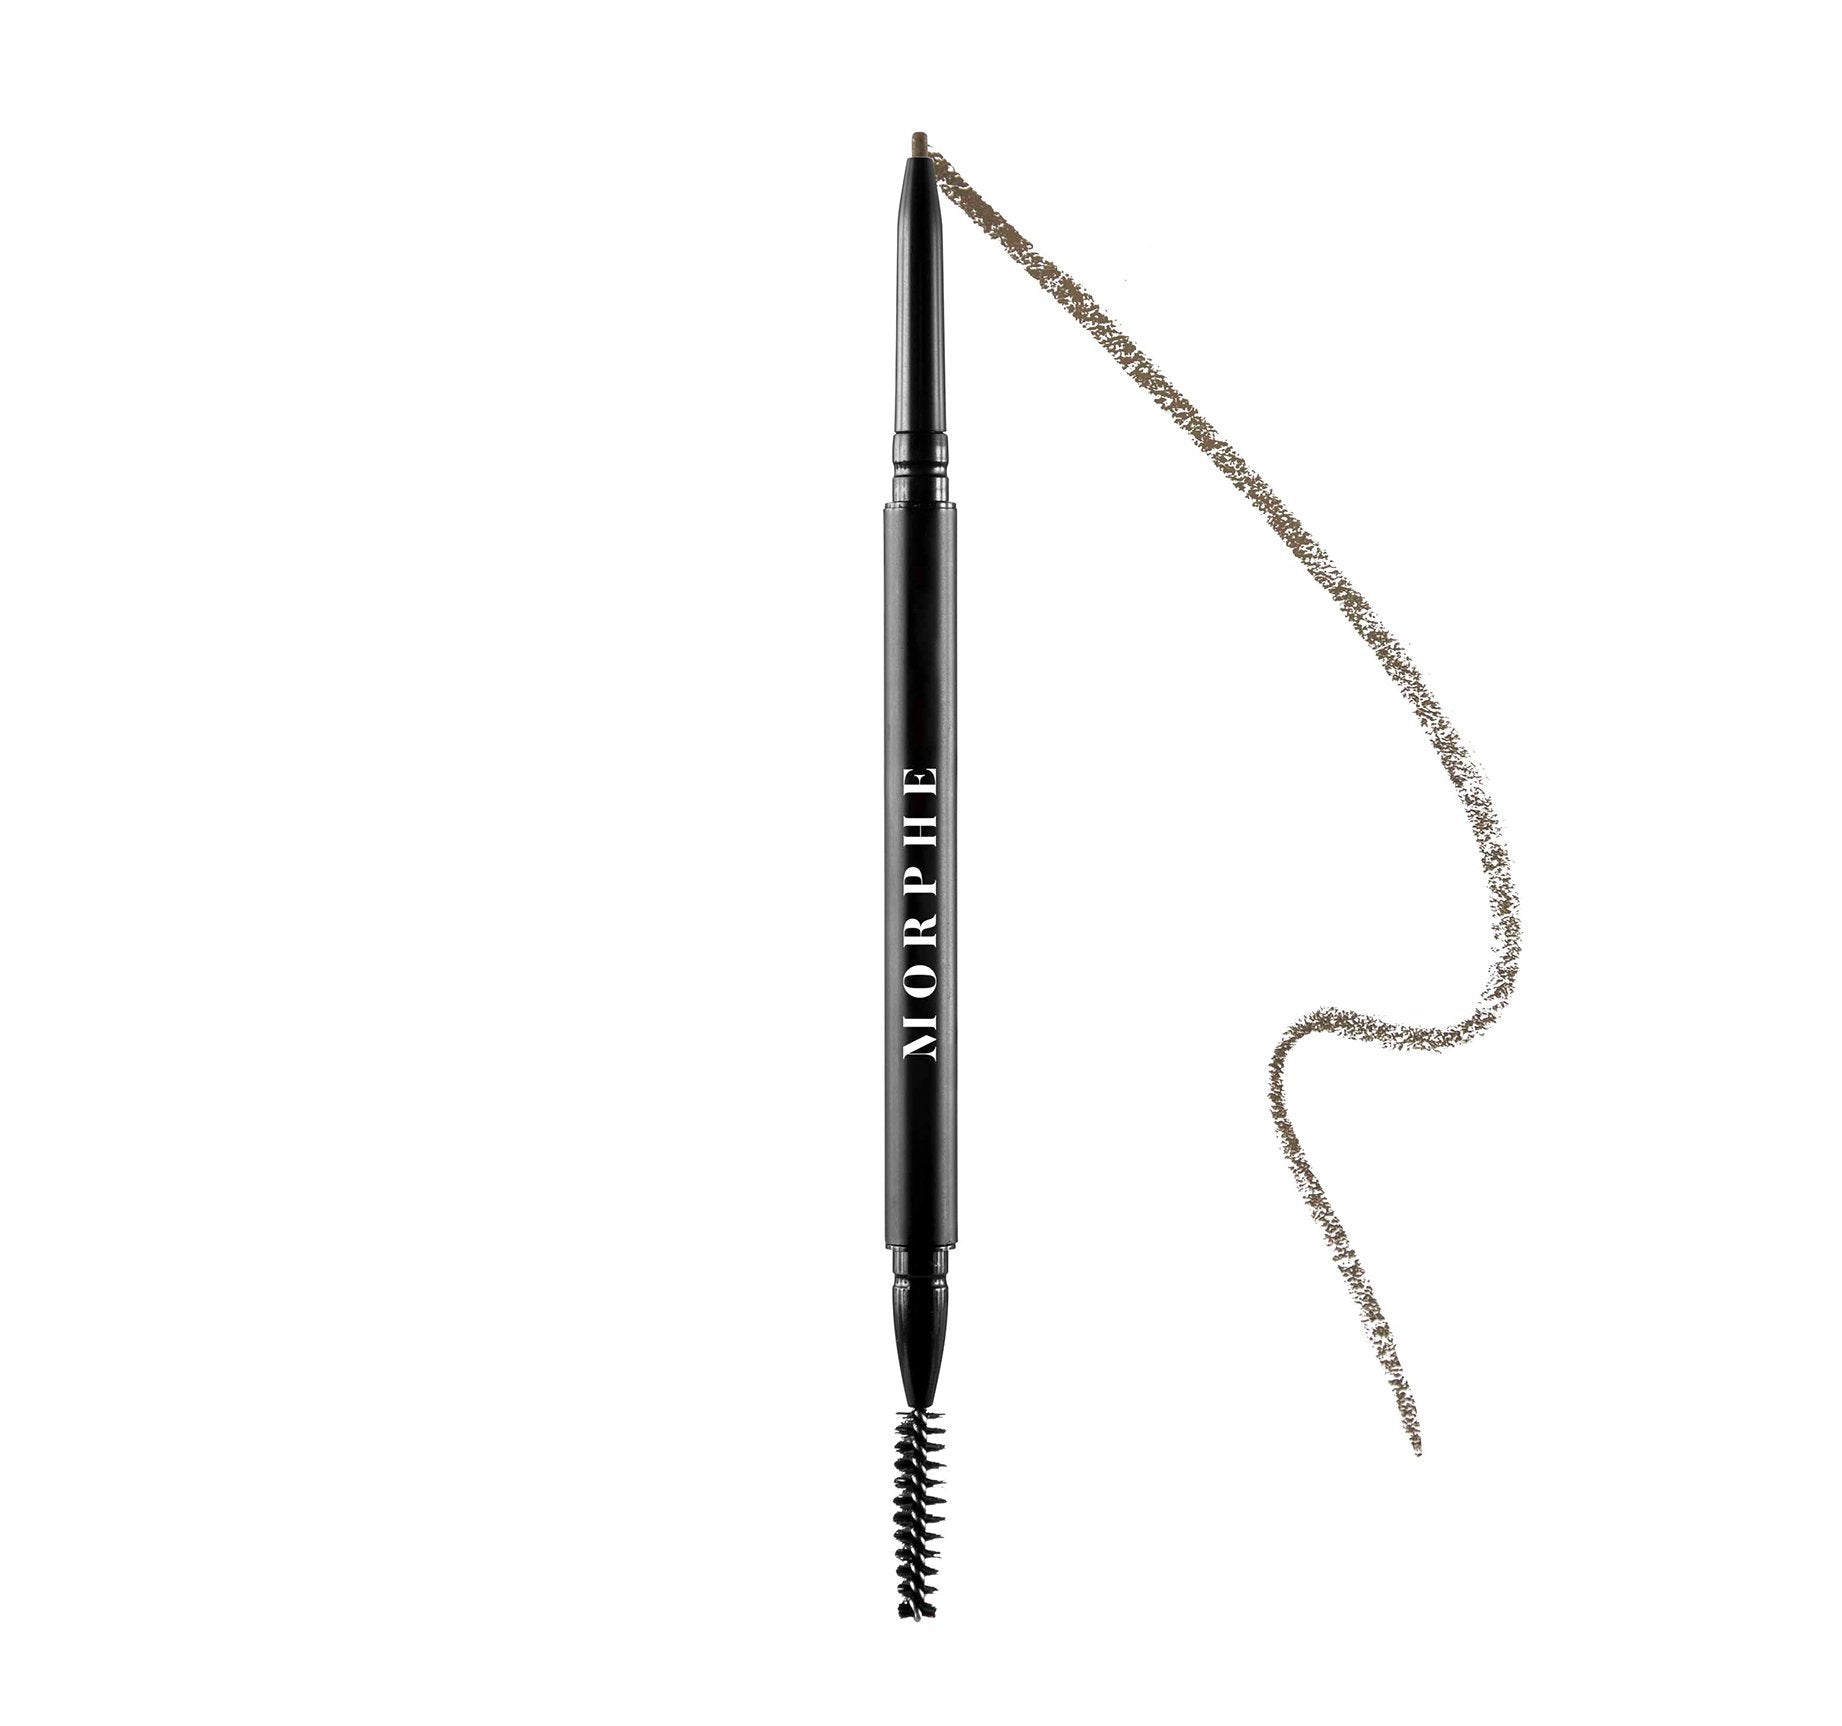 MICRO BROW PENCIL - BISCOTTI, view larger image